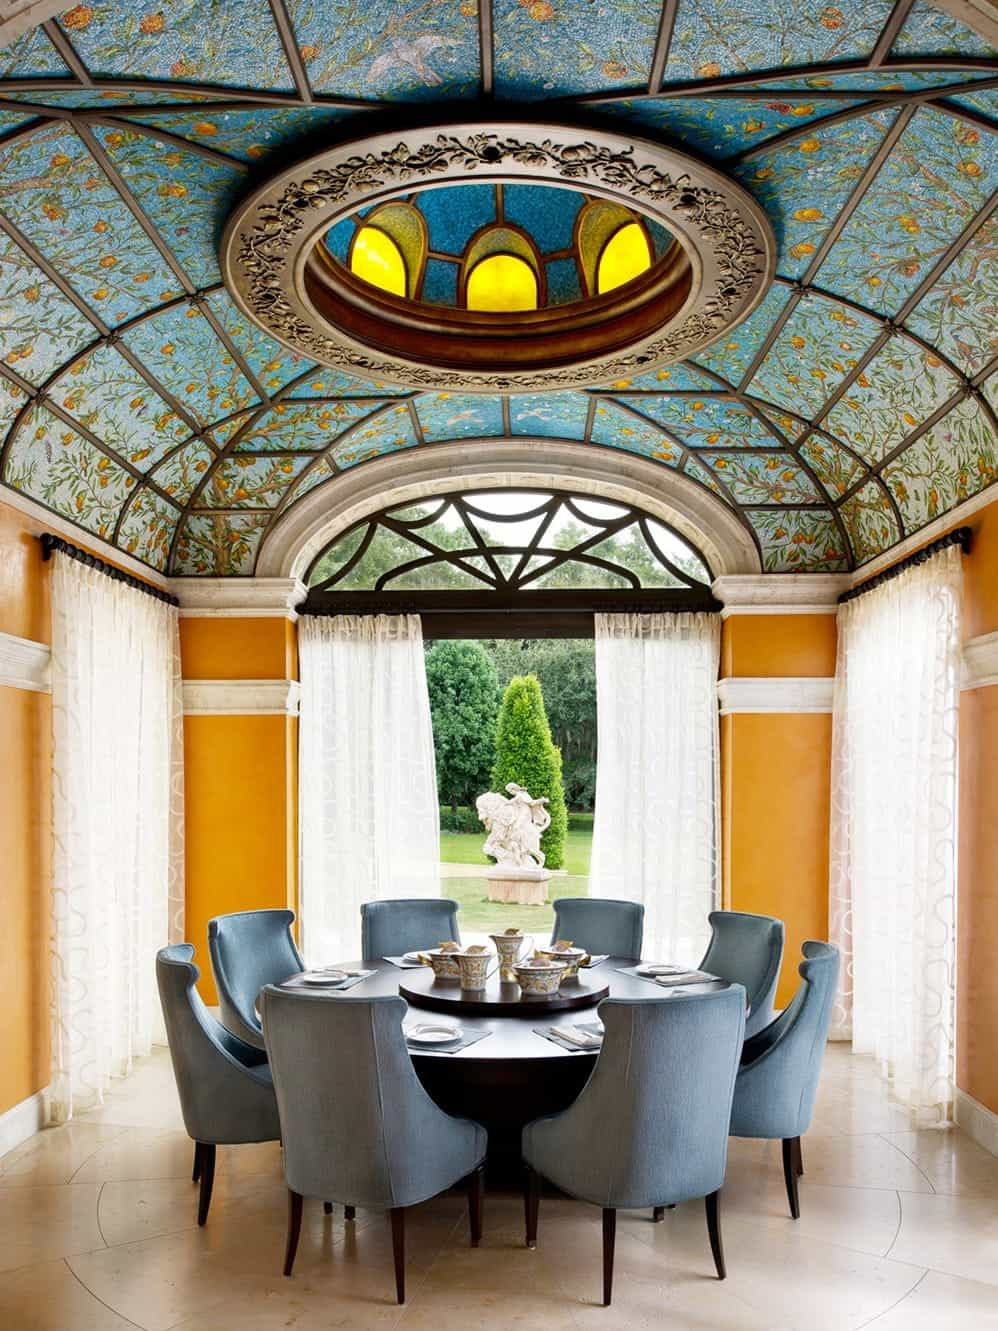 Beautiful Dining Room With Ornate Ceiling And Round Dining Table (View 25 of 25)